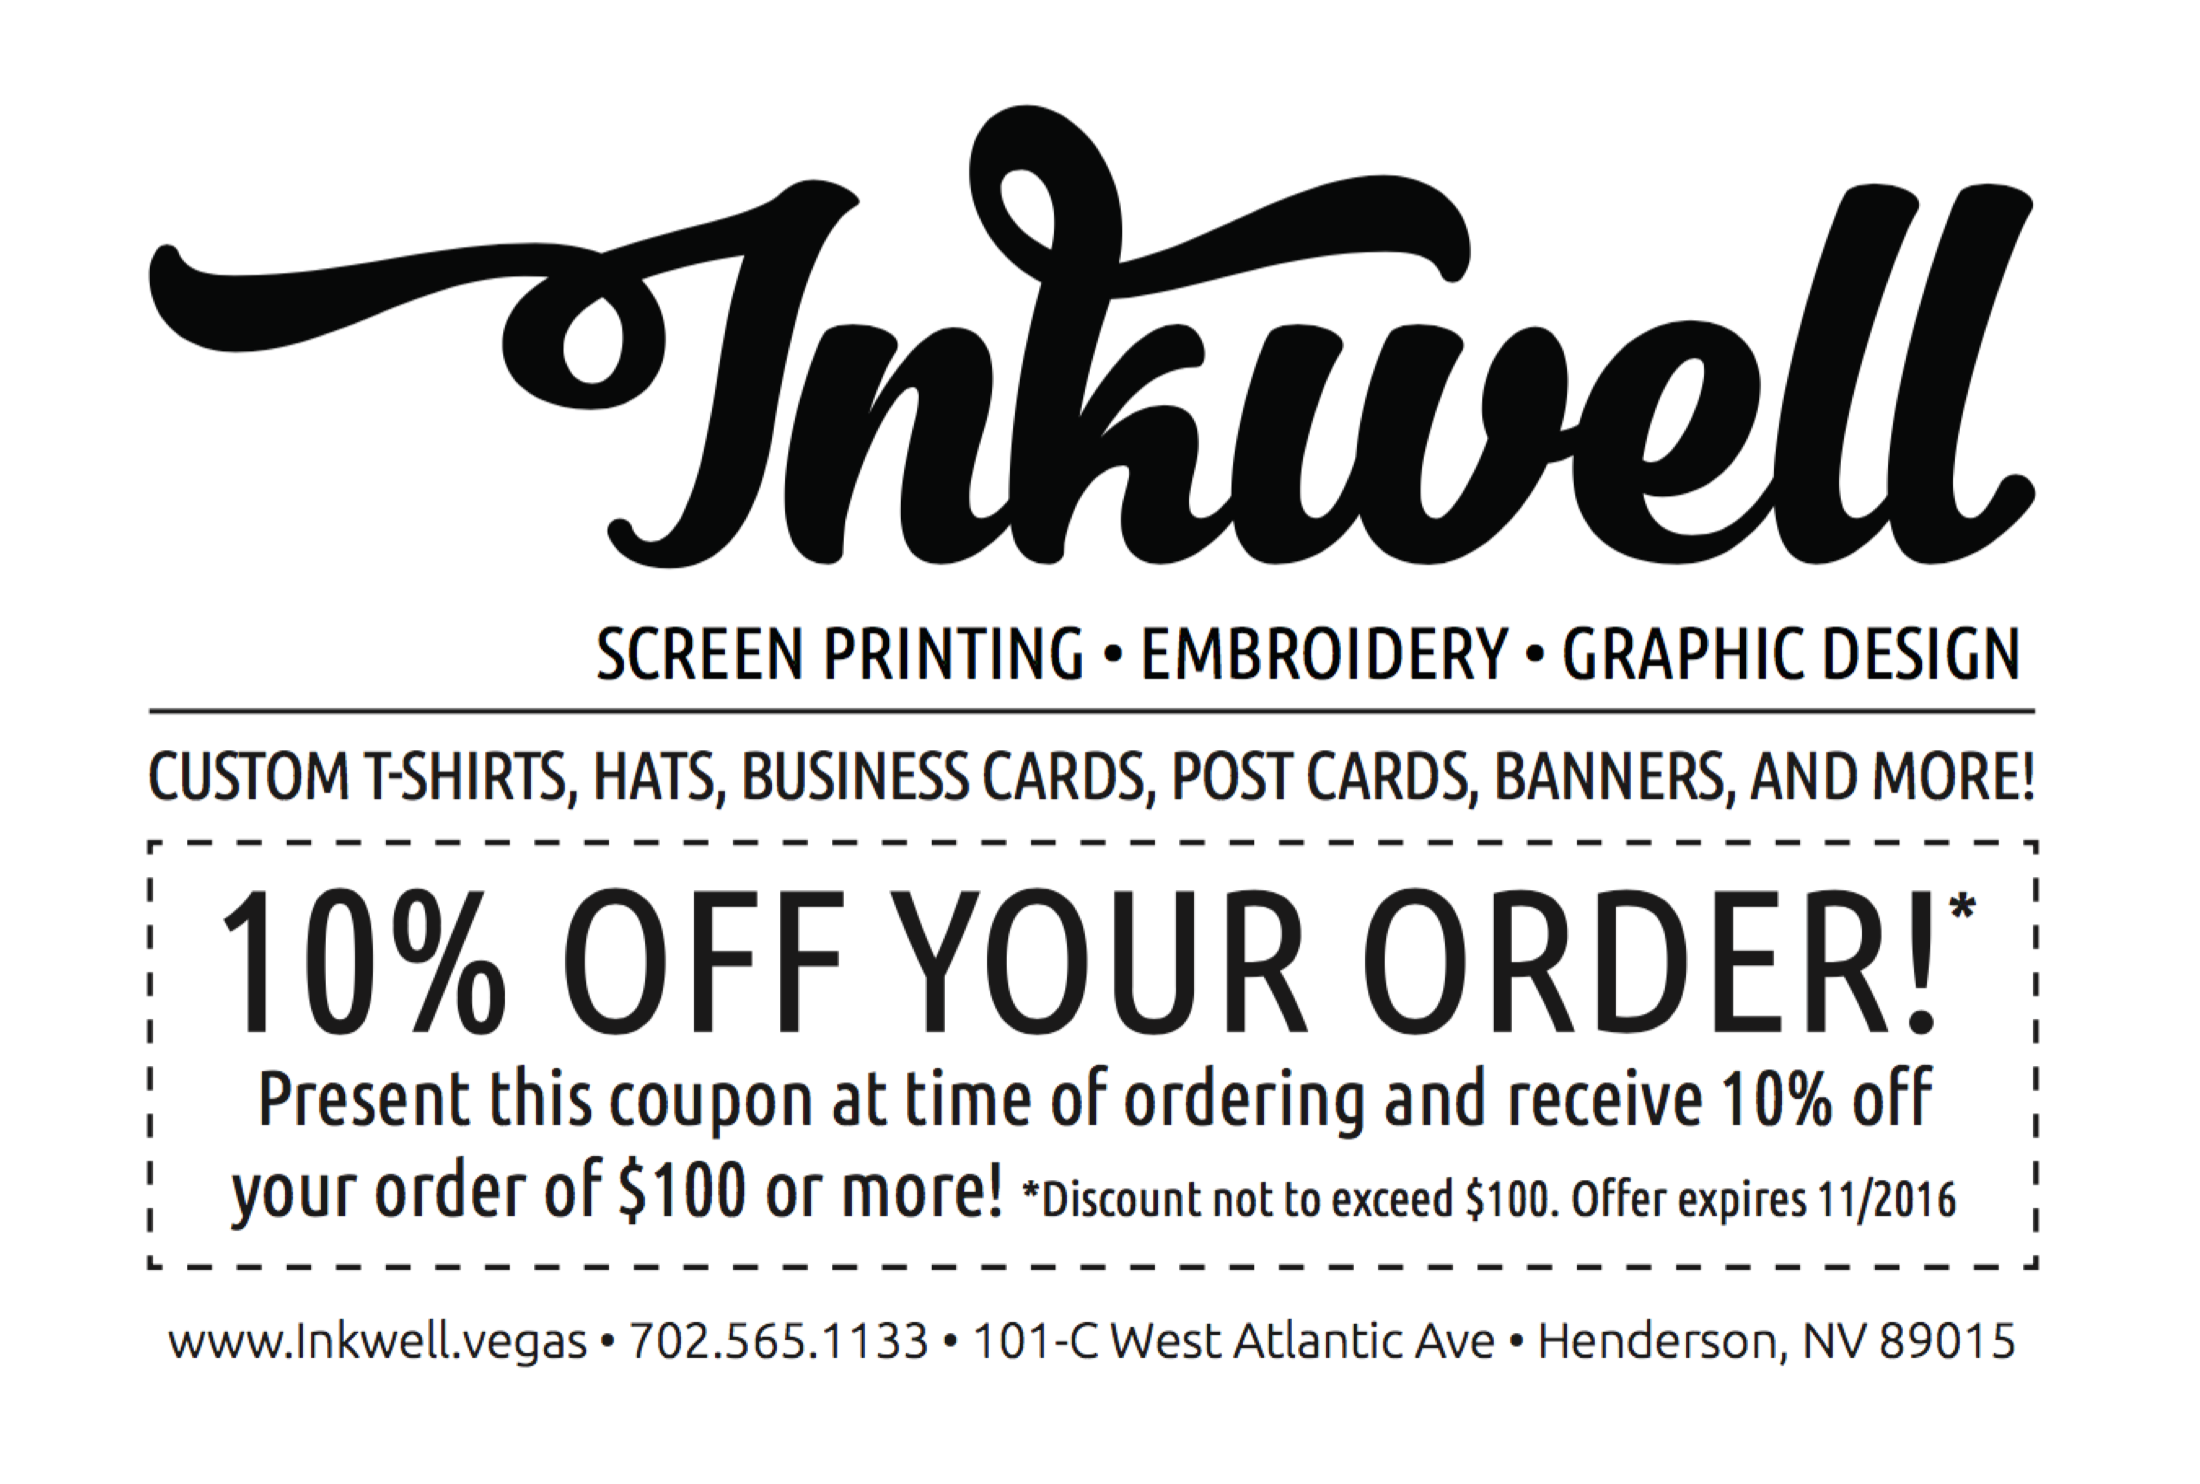 Home | Inkwell - Screen Printing, Embroidery & Graphic Design ...